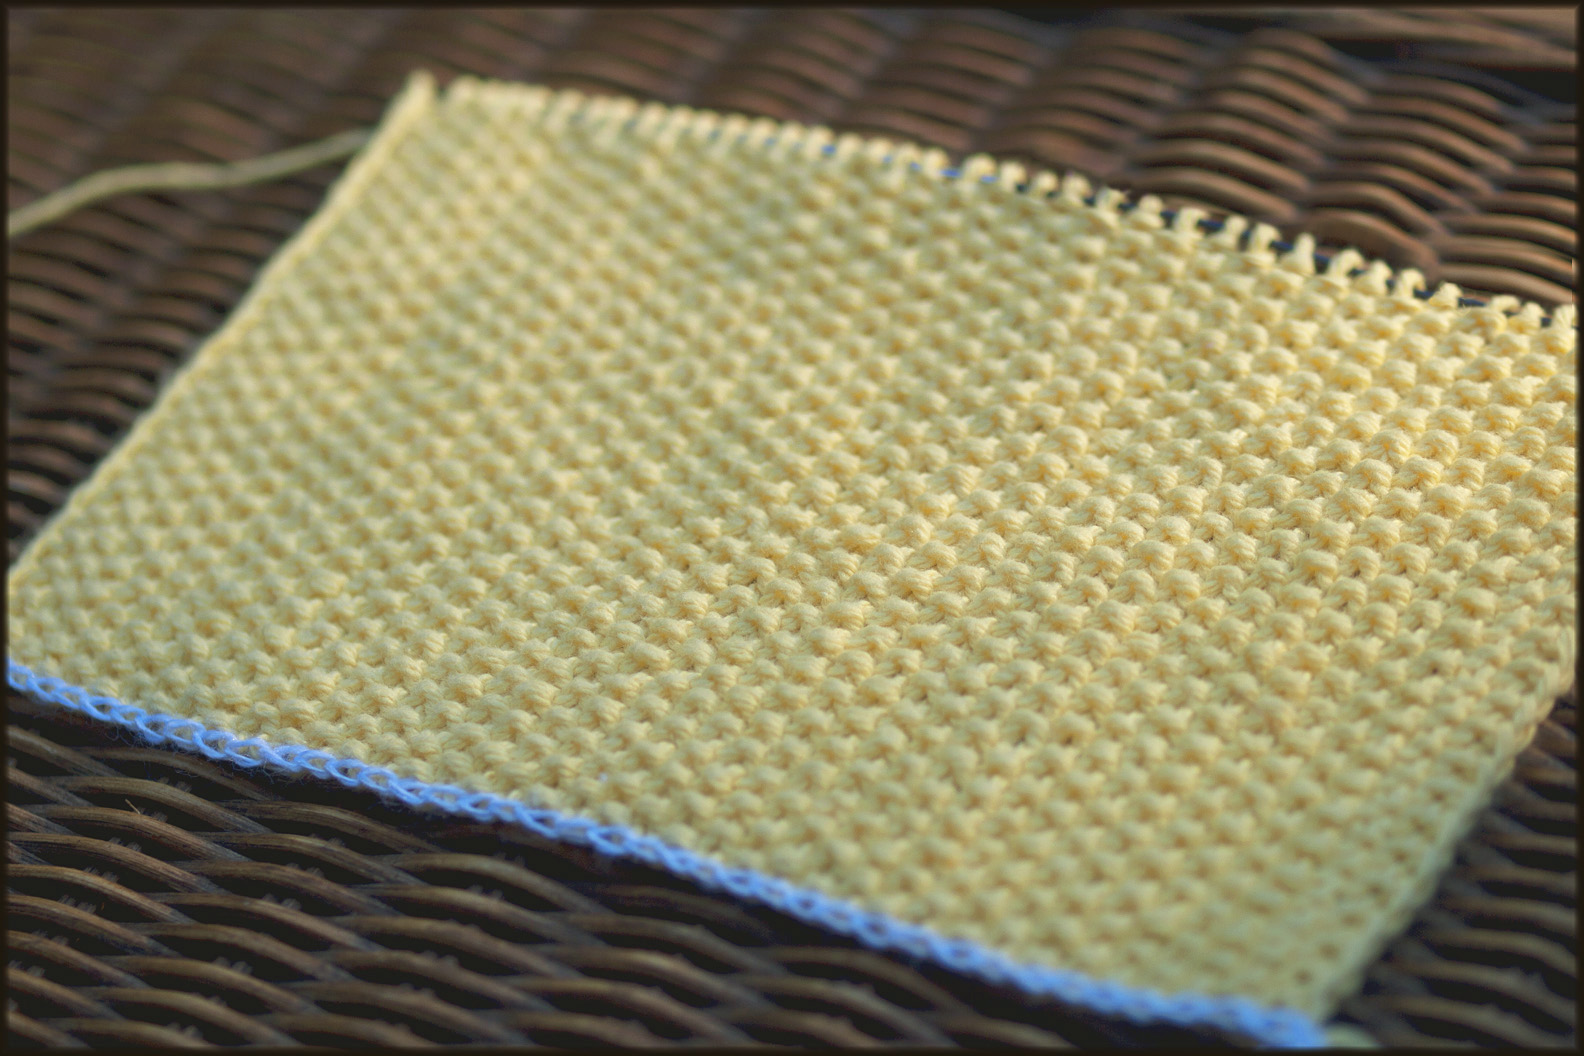 Wyndlestraw Designs: Market Bag Knit-along #4 - Stitches and Selvedges